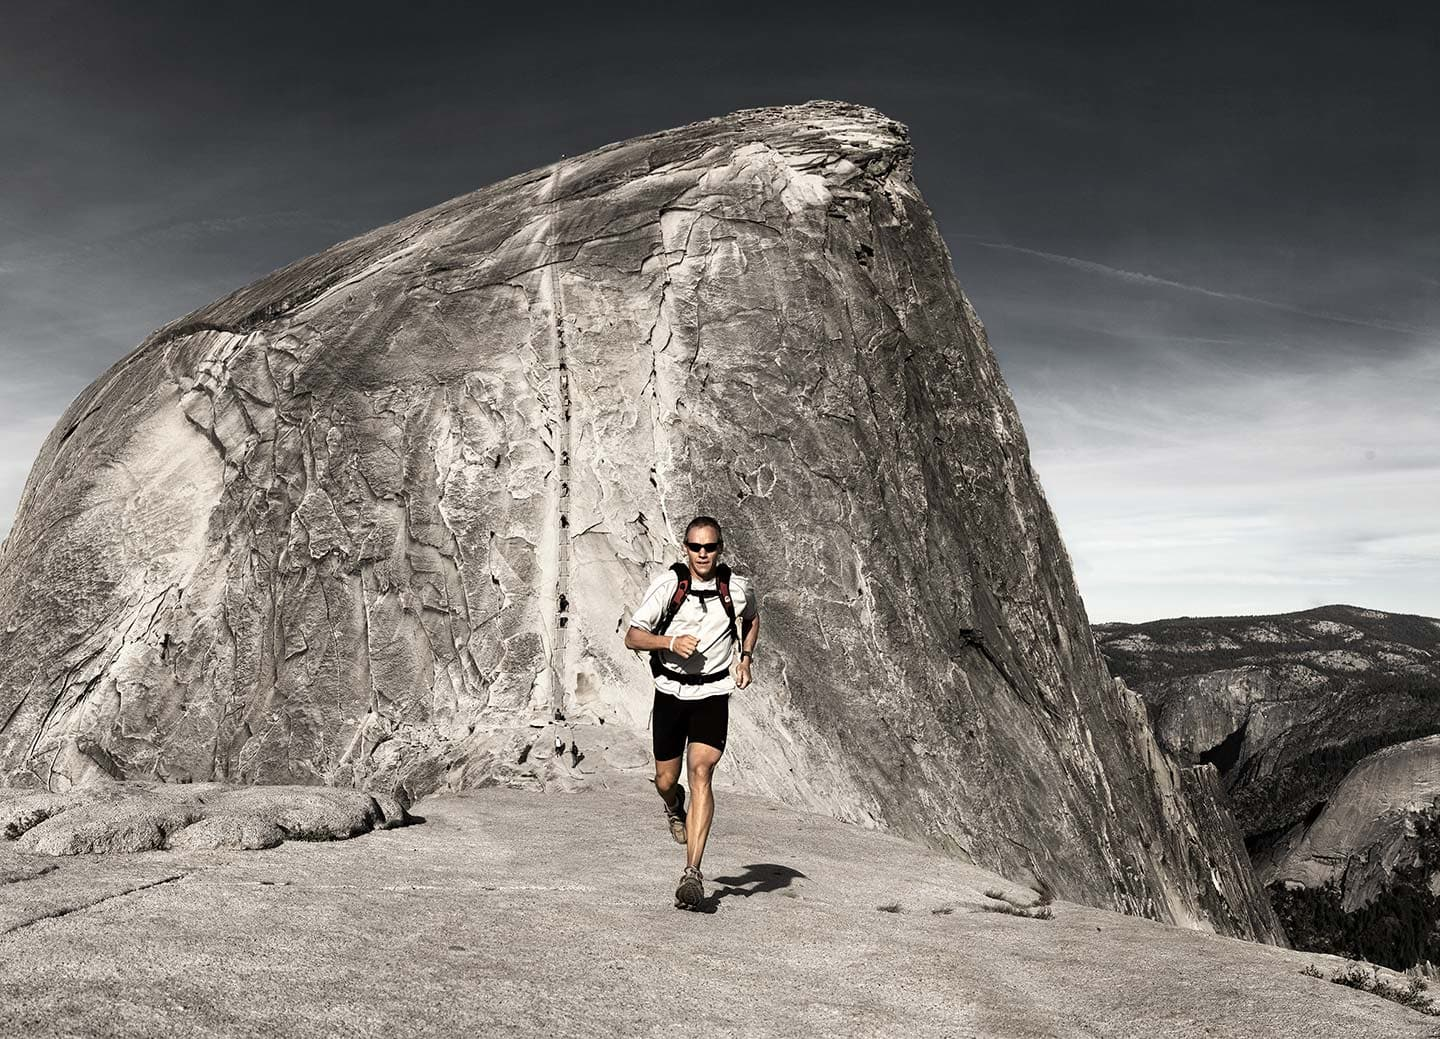 Image of Man in Black and White Sports Apparel Running with Grey Cliff in Background